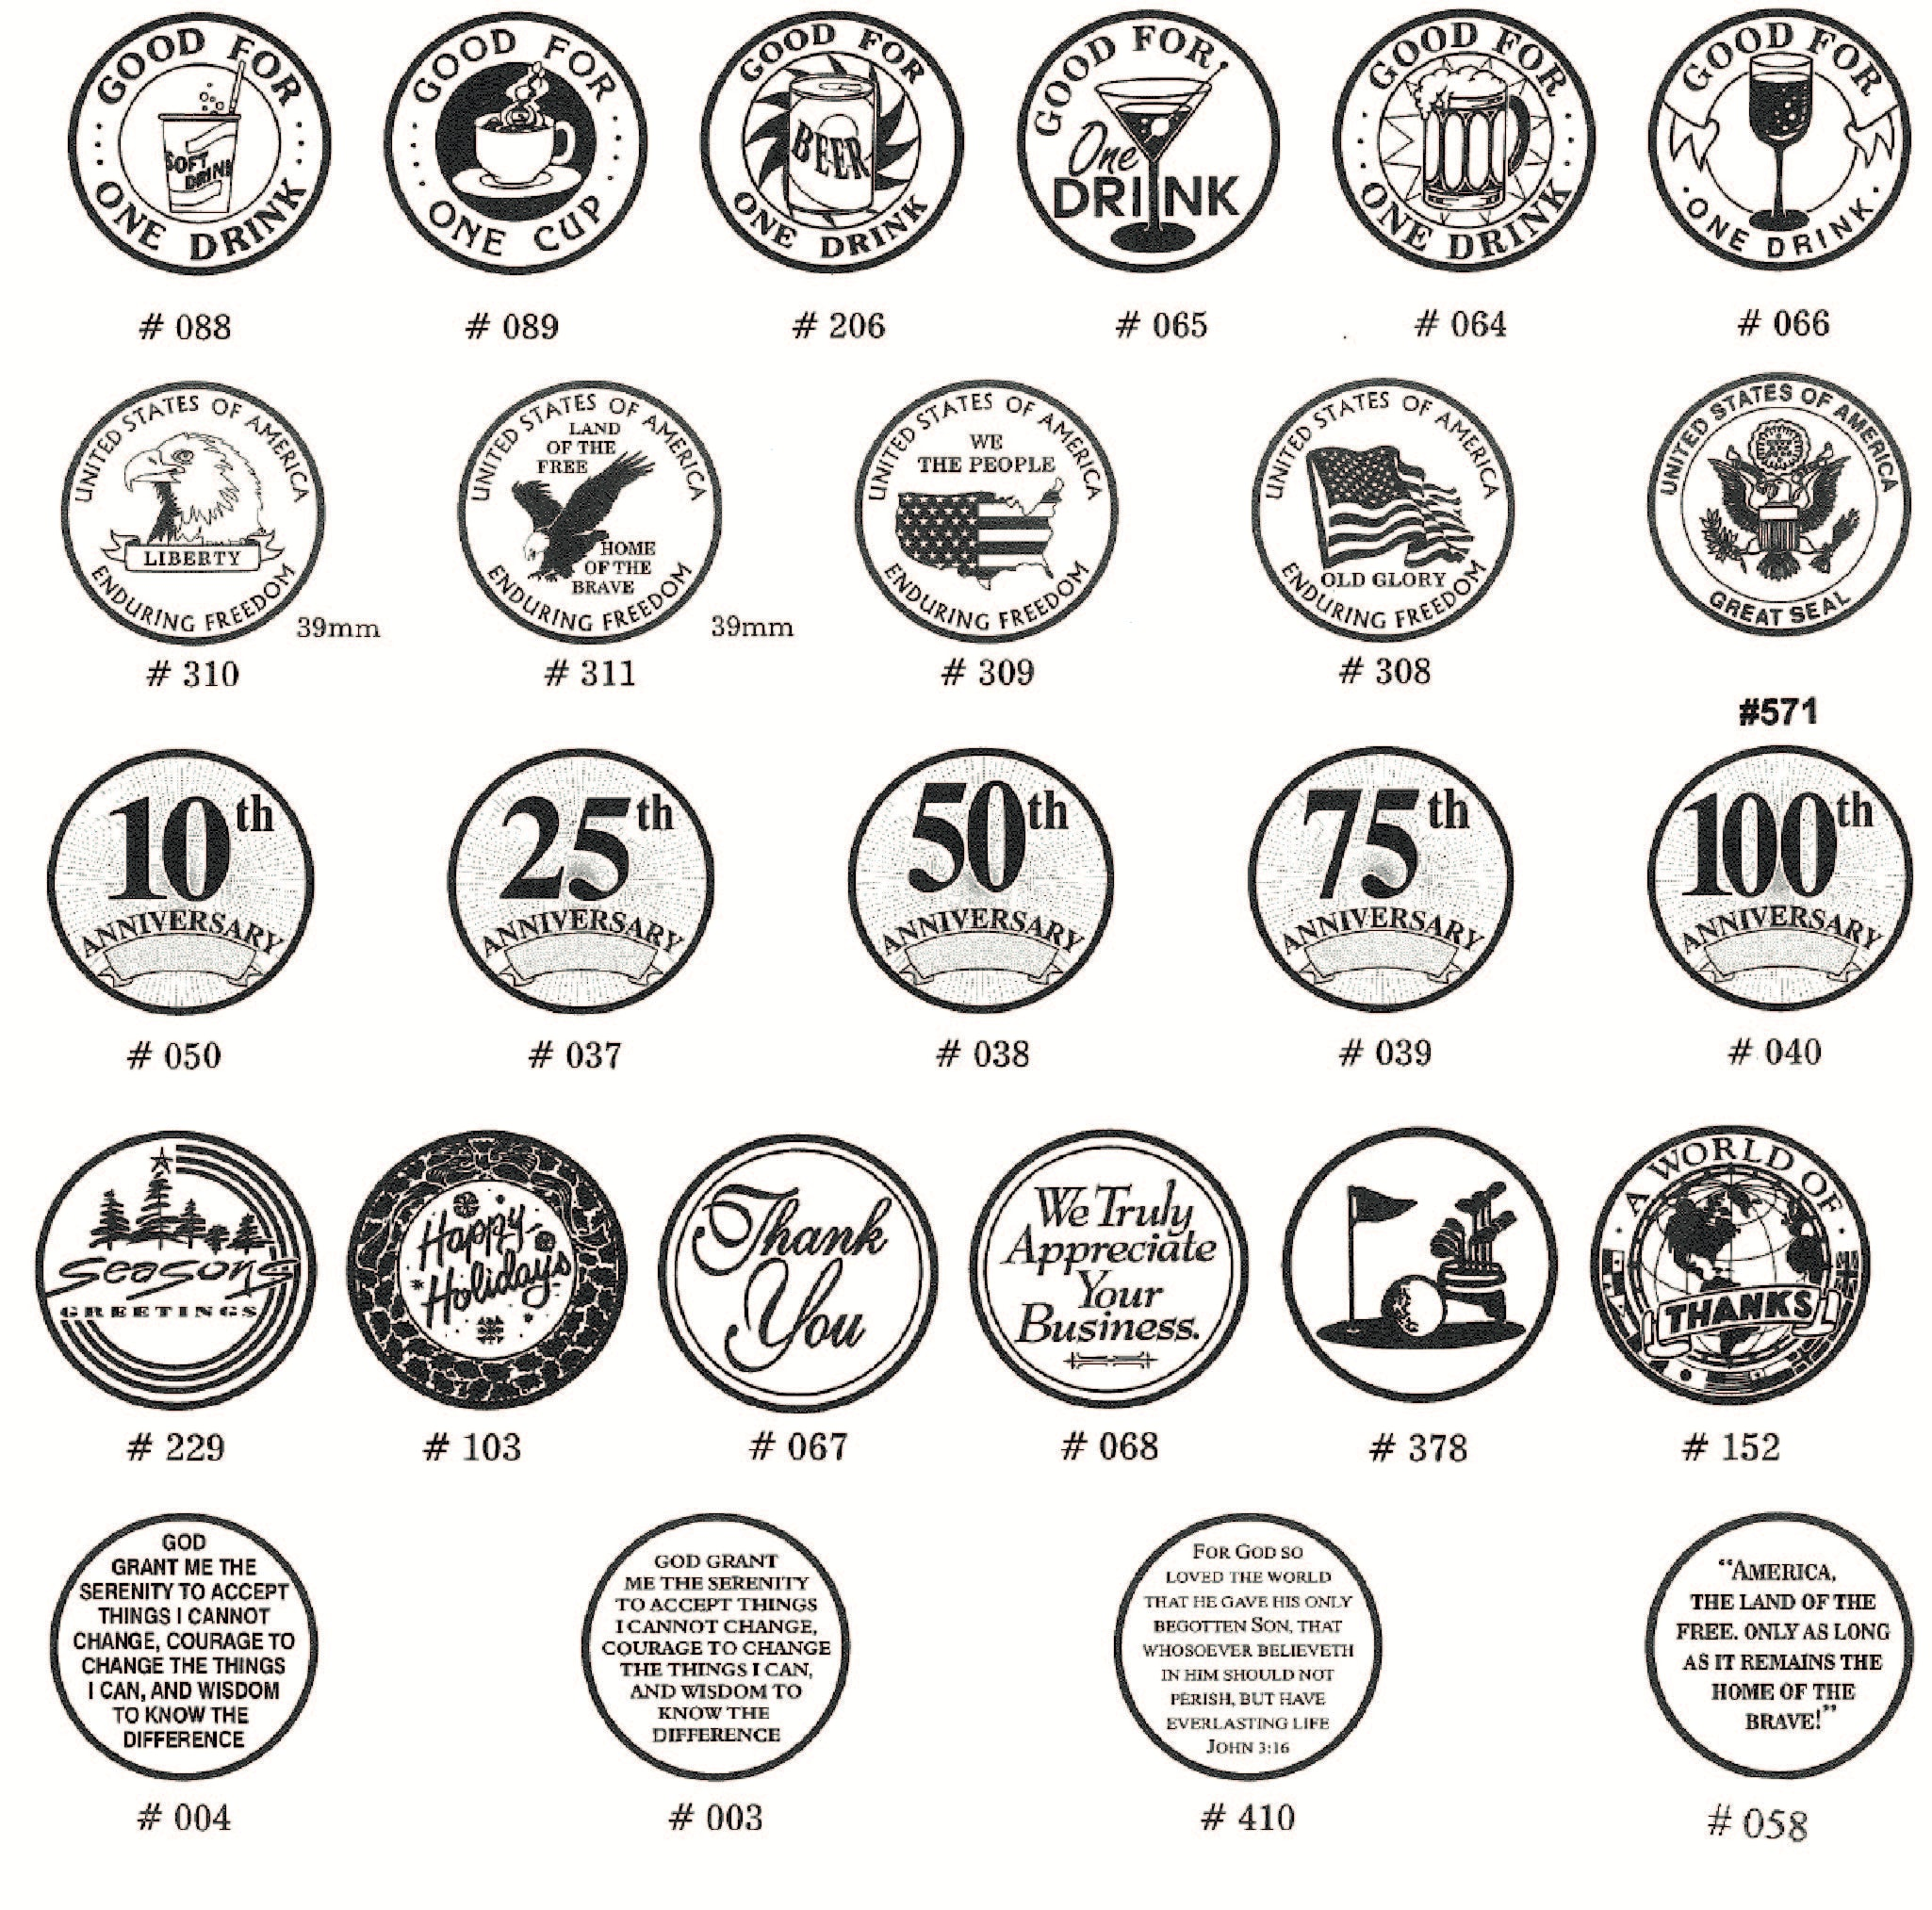 http://files.b-token.ca/files/278/original/Aluminium tokens standard designs.jpg?1568723817